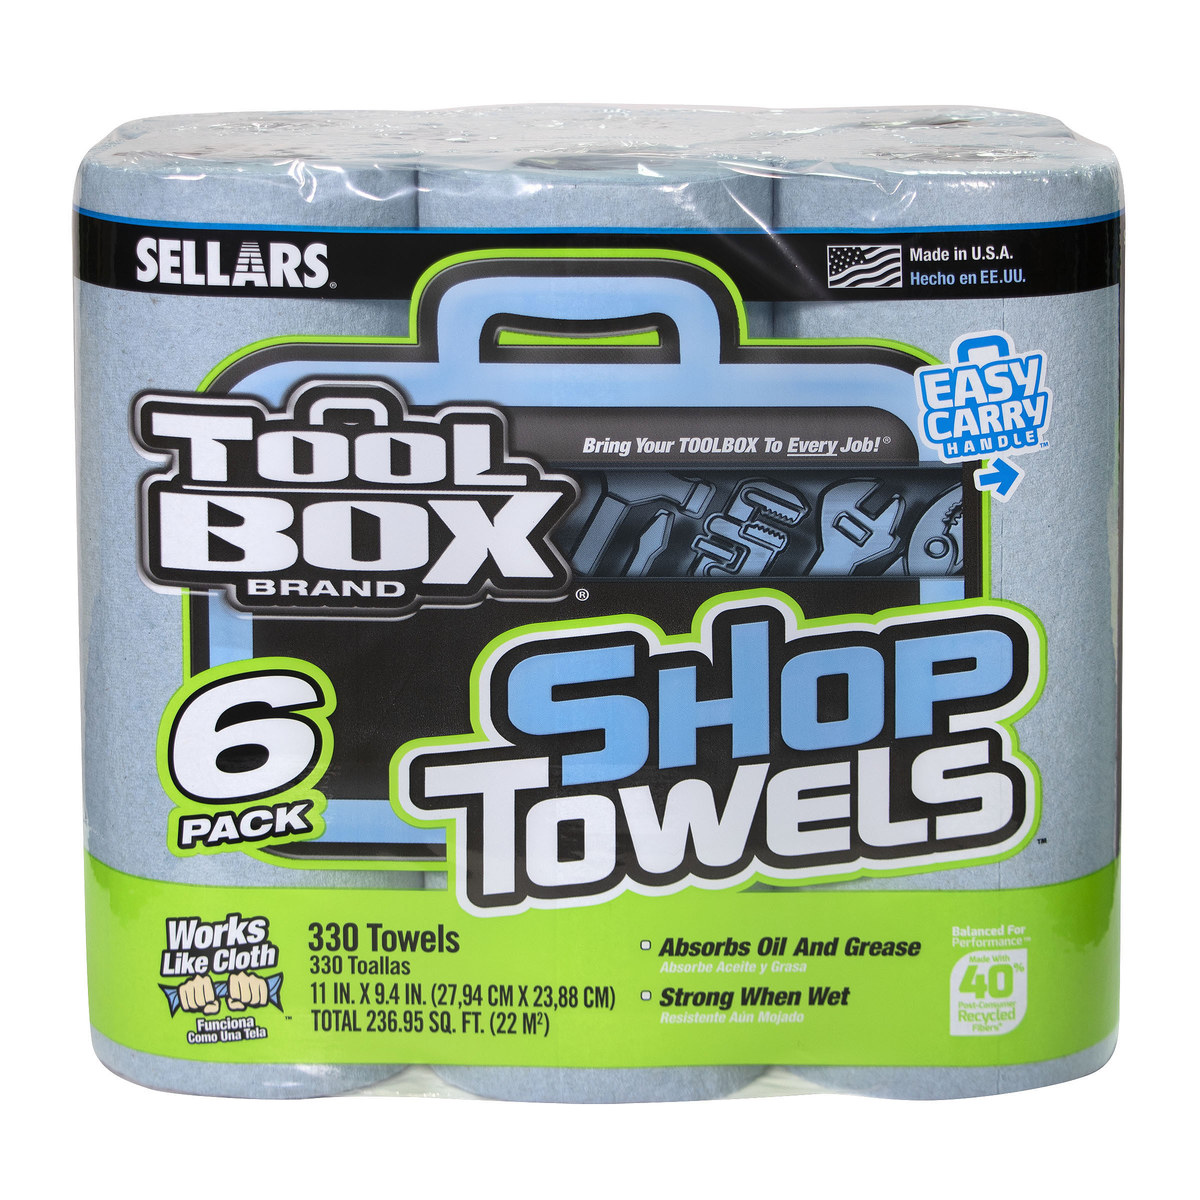 Painters Towels Lot of 4 Boxes SELLARS ToolBox 800 Sheets Multi-Purpose Rags